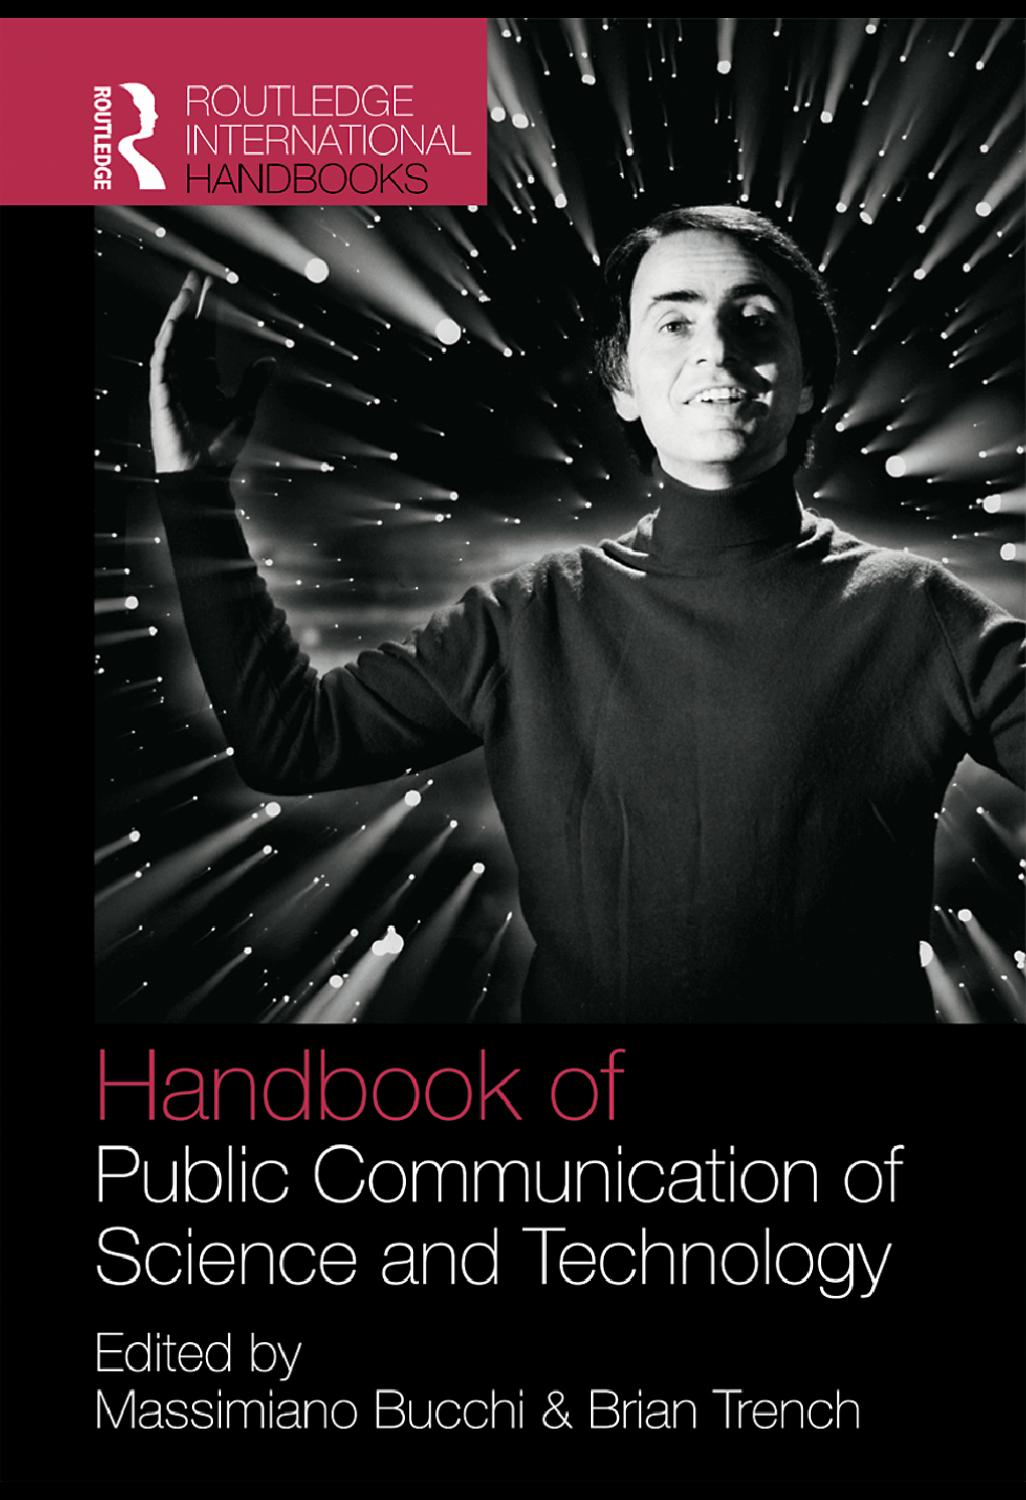 Handbook of public communication of science and technology 2008 by handbook of public communication of science and technology 2008 by astrid bengtsson issuu fandeluxe Image collections